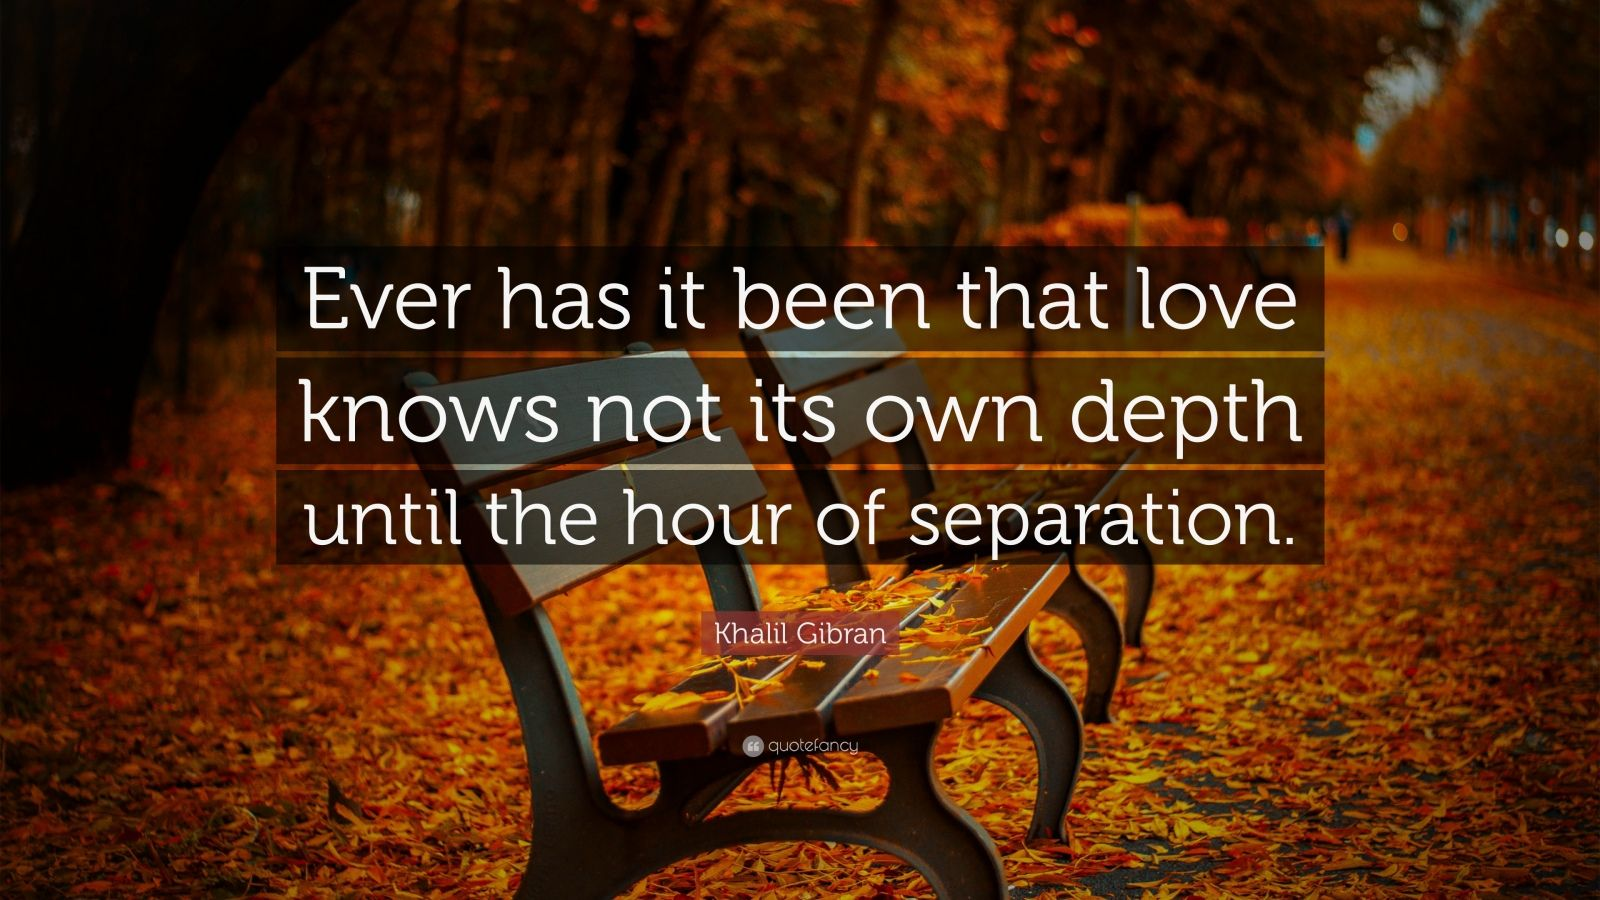 """Khalil Gibran Quote: """"Ever has it been that love knows not its own depth until the hour of separation."""""""